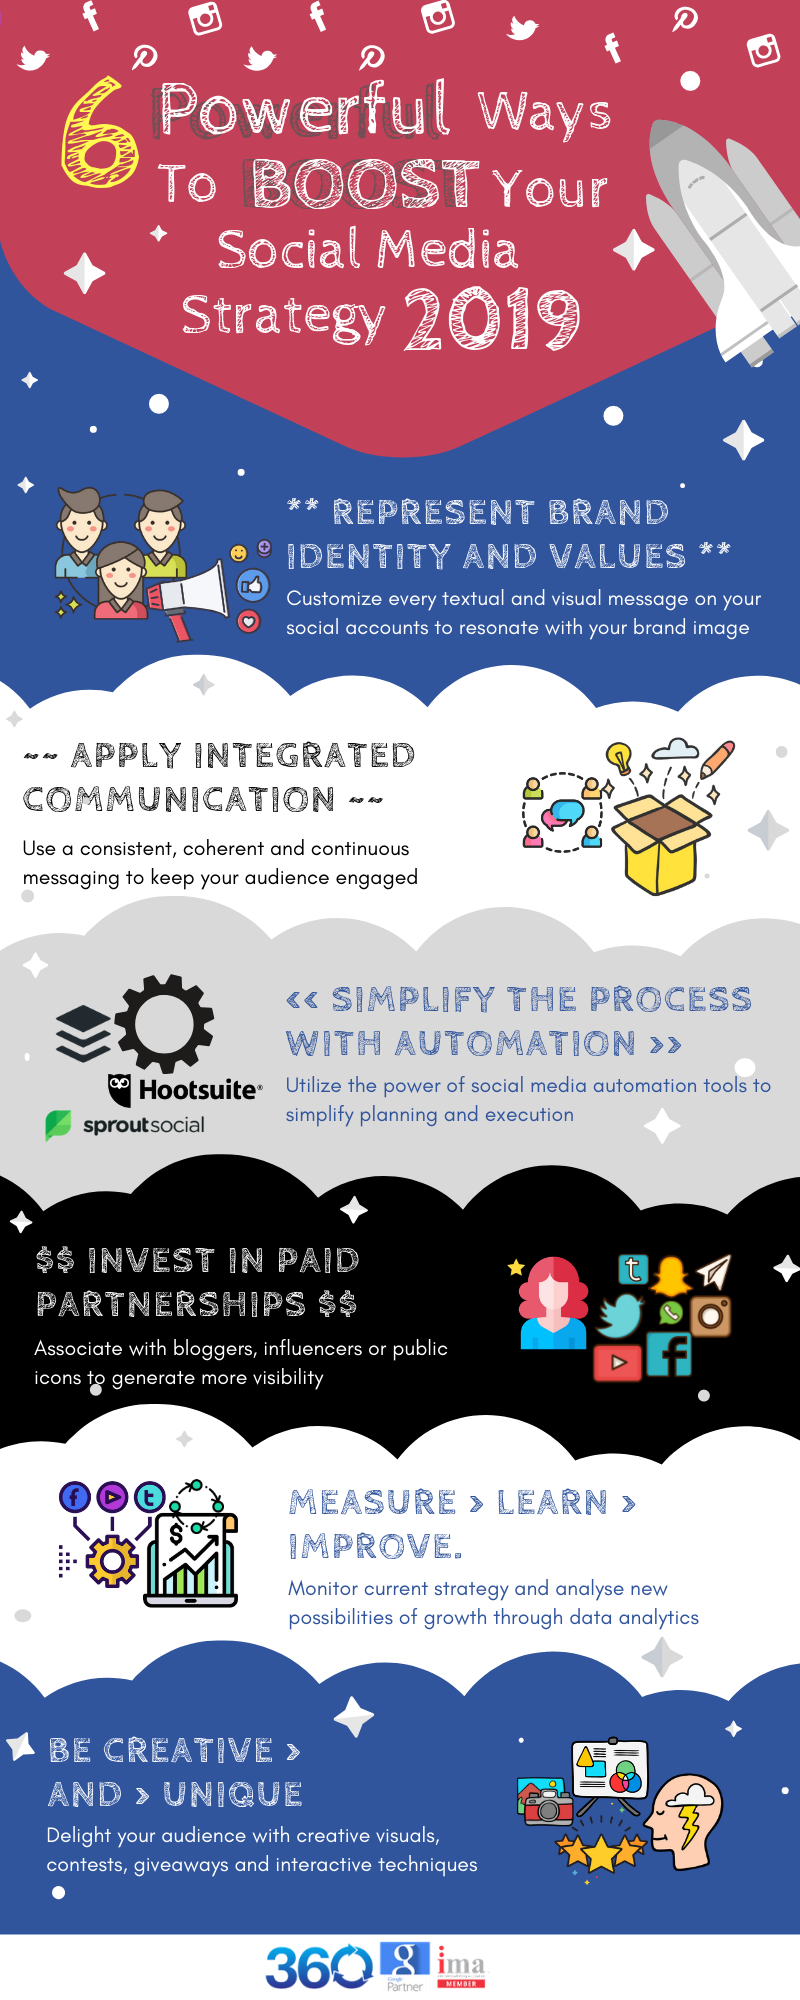 infographic-boost-social-media-strategy-2019